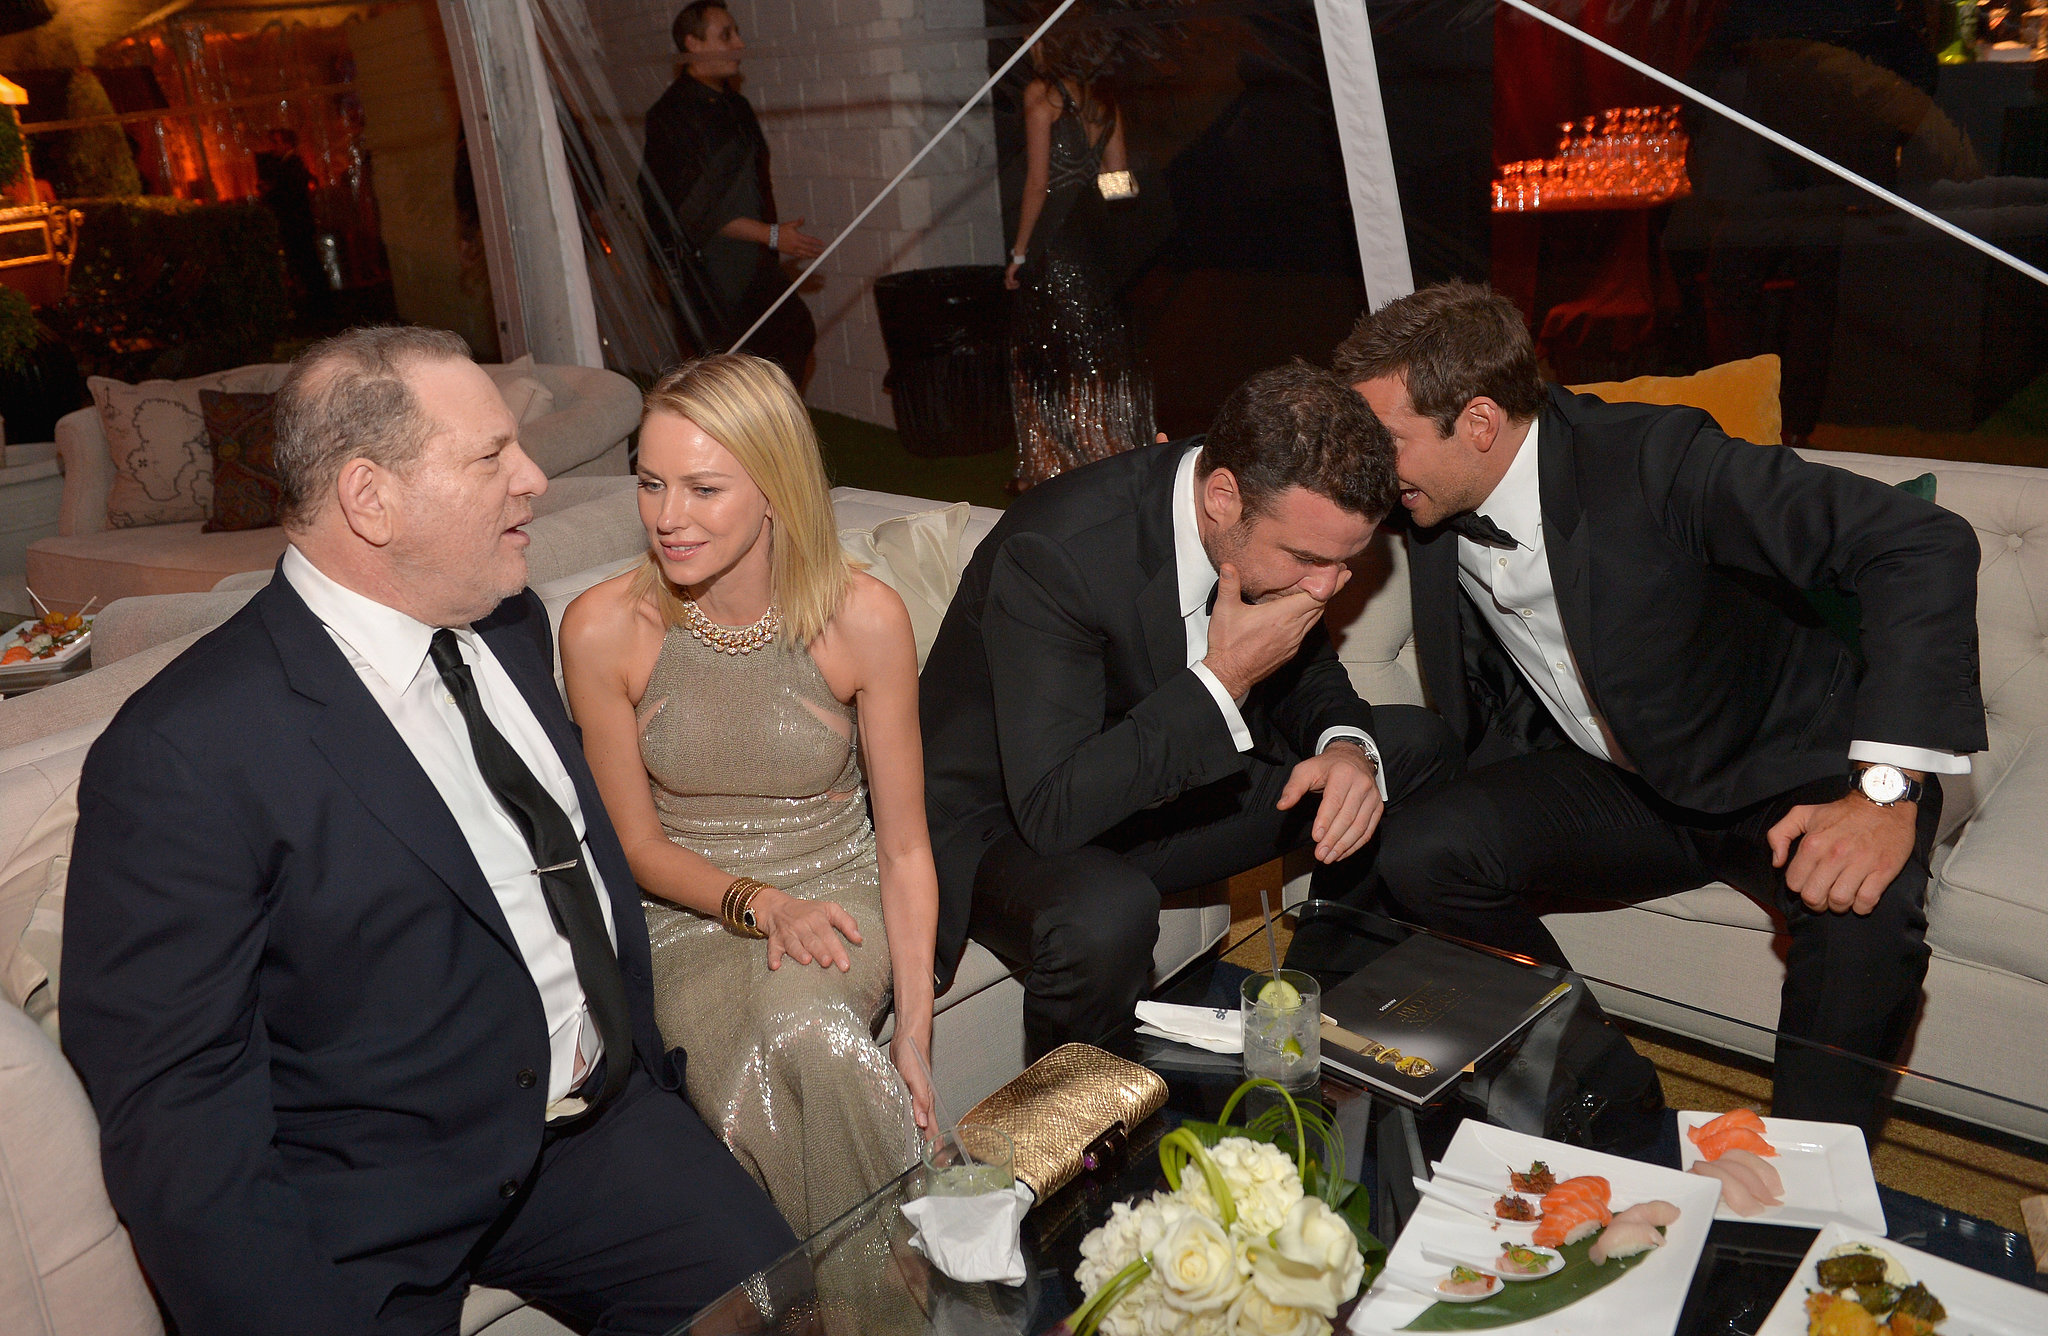 Naomi Watts chatted with Harvey Weinstein while Bradley Cooper and Liev Schreiber talked nearby at Harvey's Weinstein Company bash.